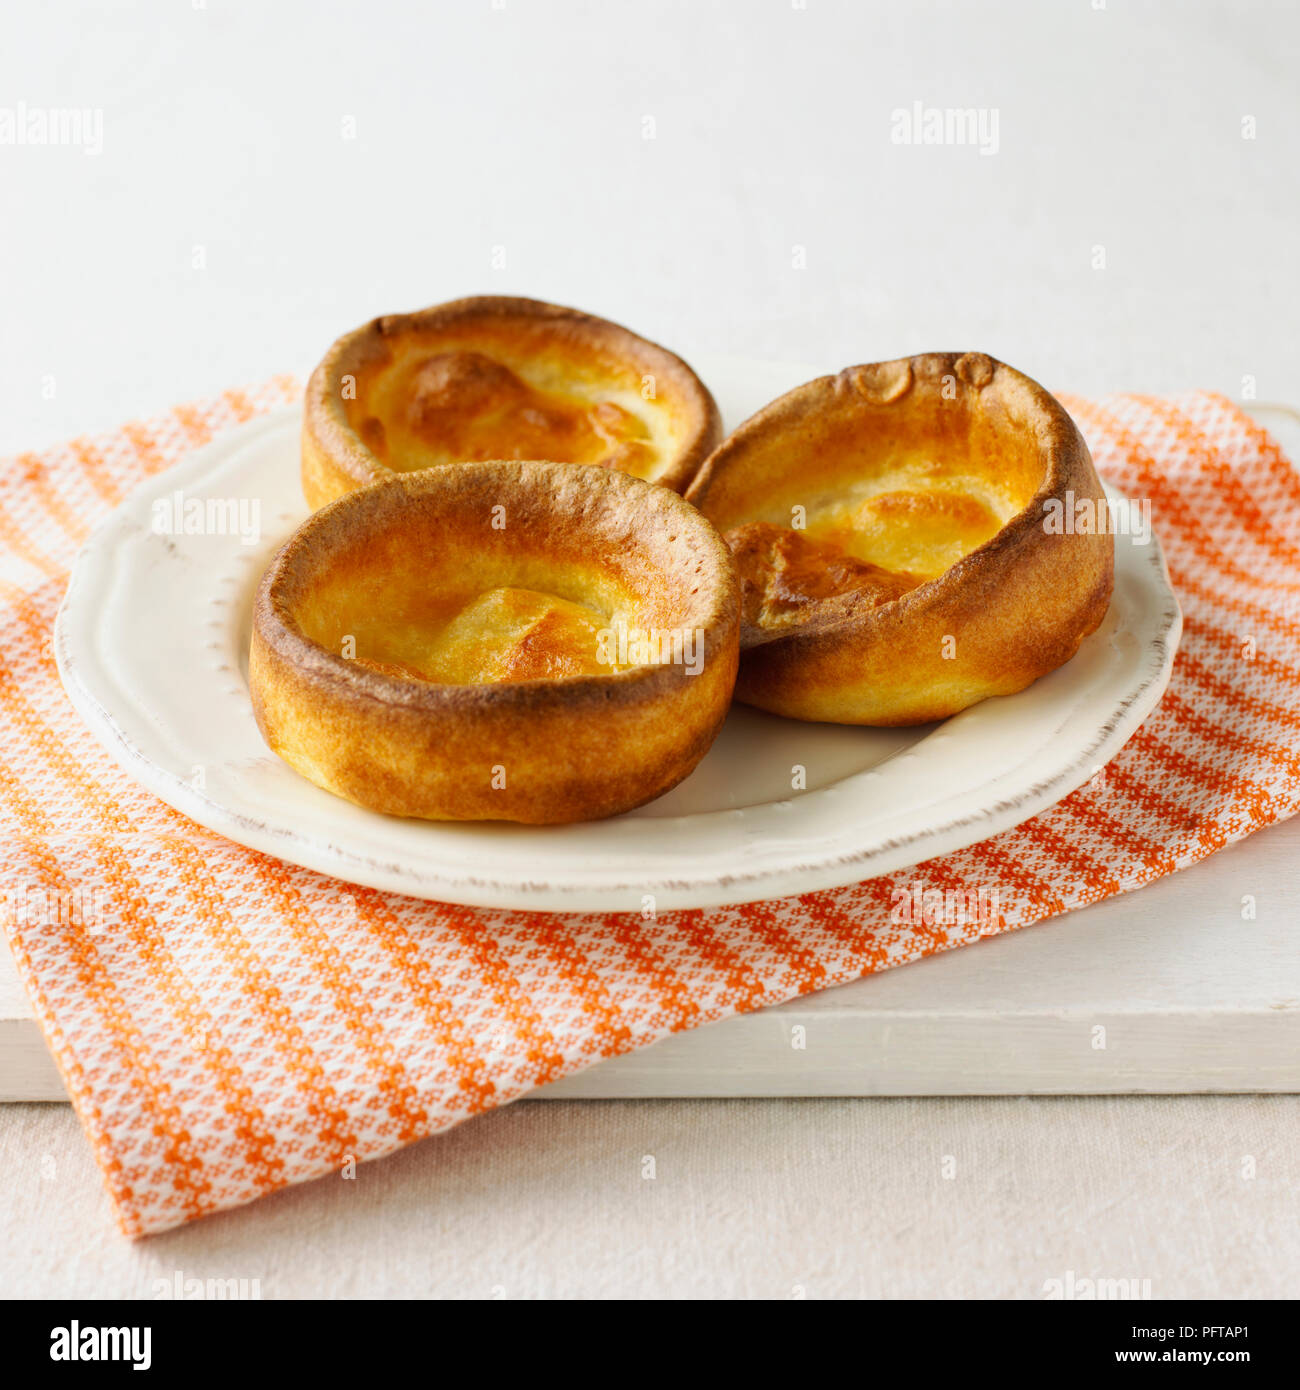 Yorkshire puddings - Stock Image